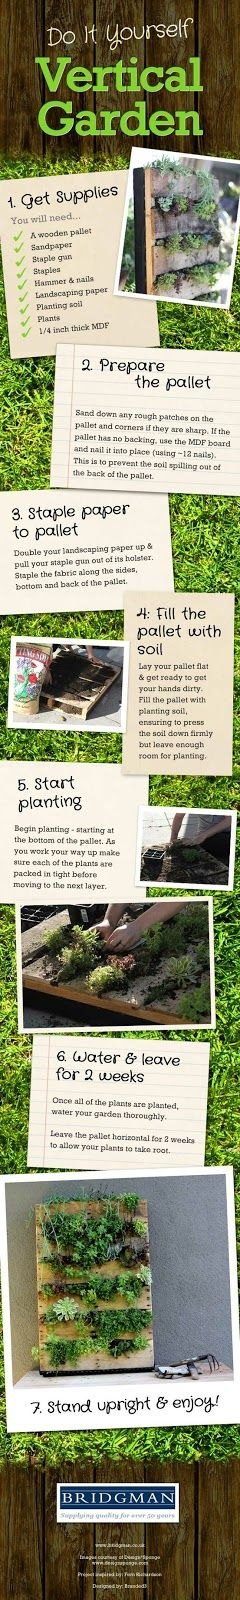 DIY Vertical Pallet Garden - Great for patios, decks, or terraces!